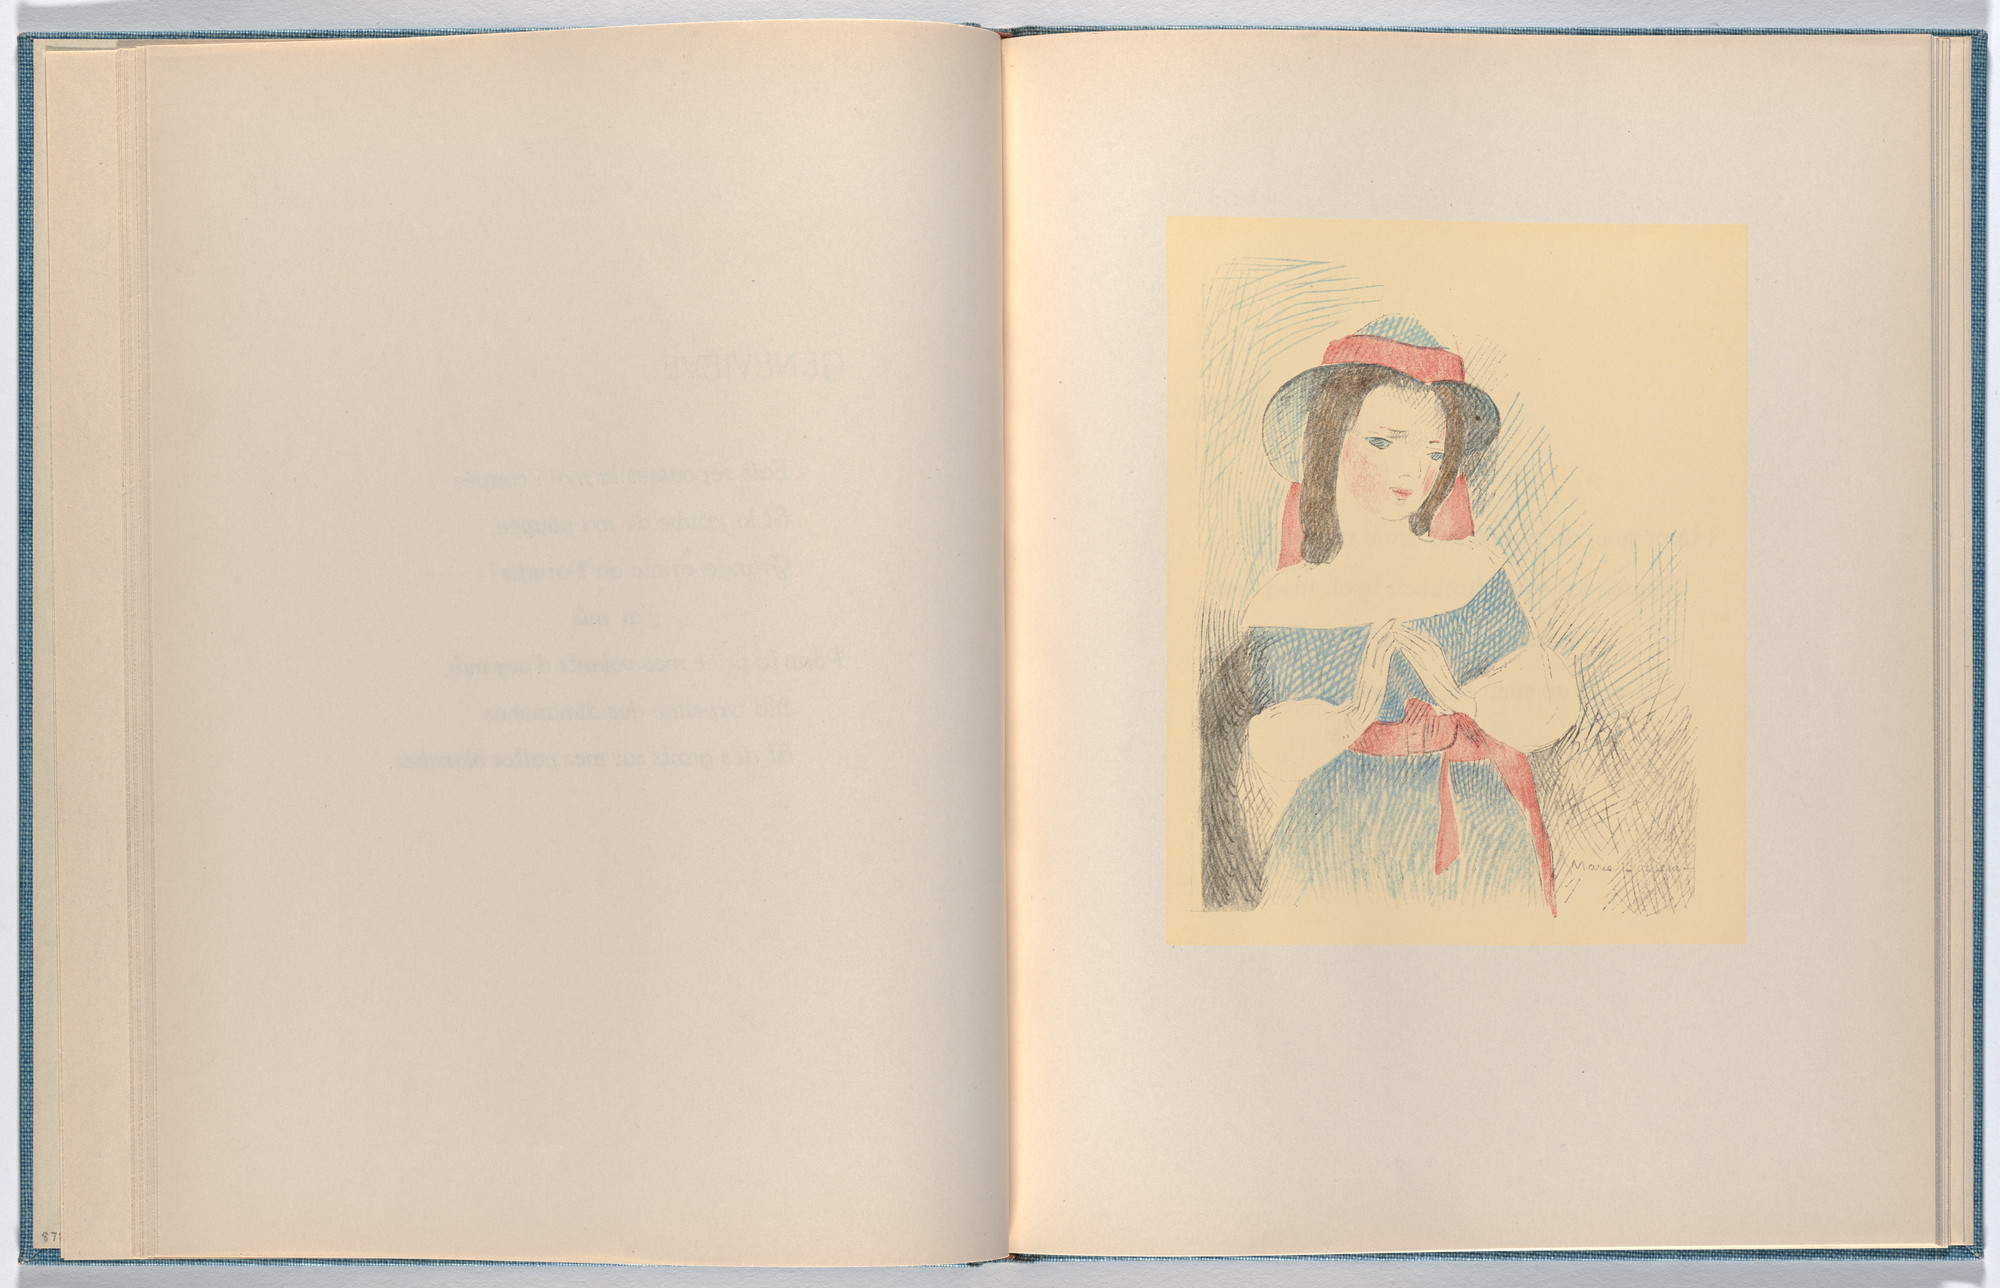 Marie Laurencin. Plate (folio 12) from Les Petites filles (The Little Girls). 1942